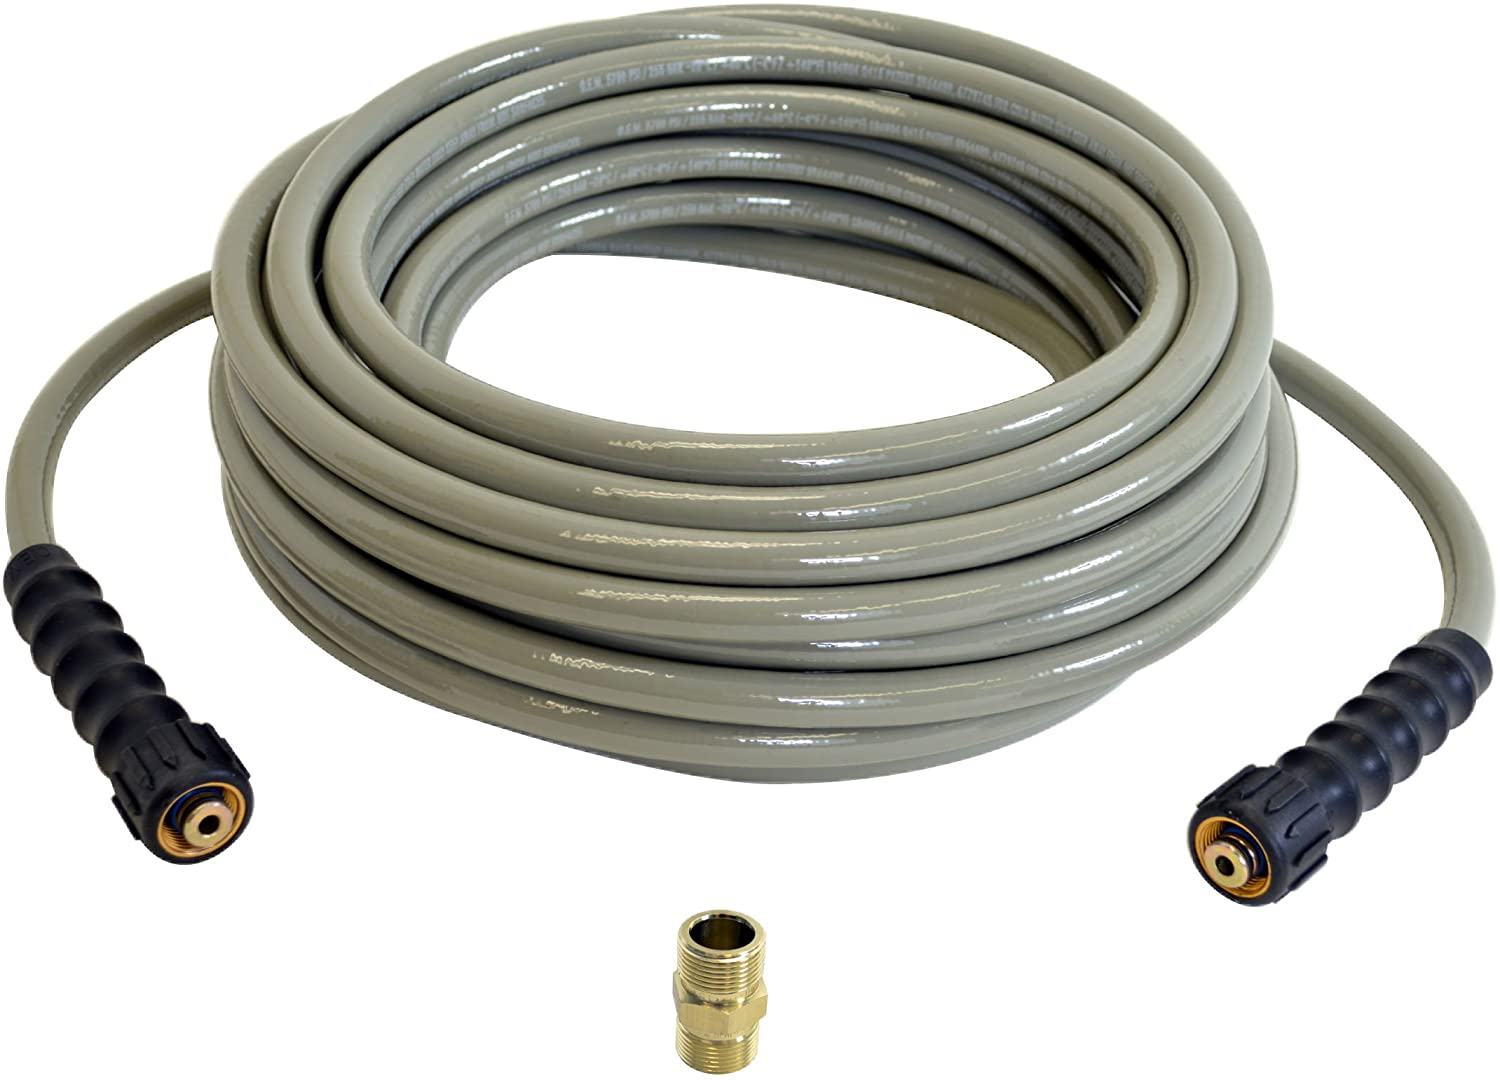 SIMPSON Cleaning MorFlex 40226 Extension Hose